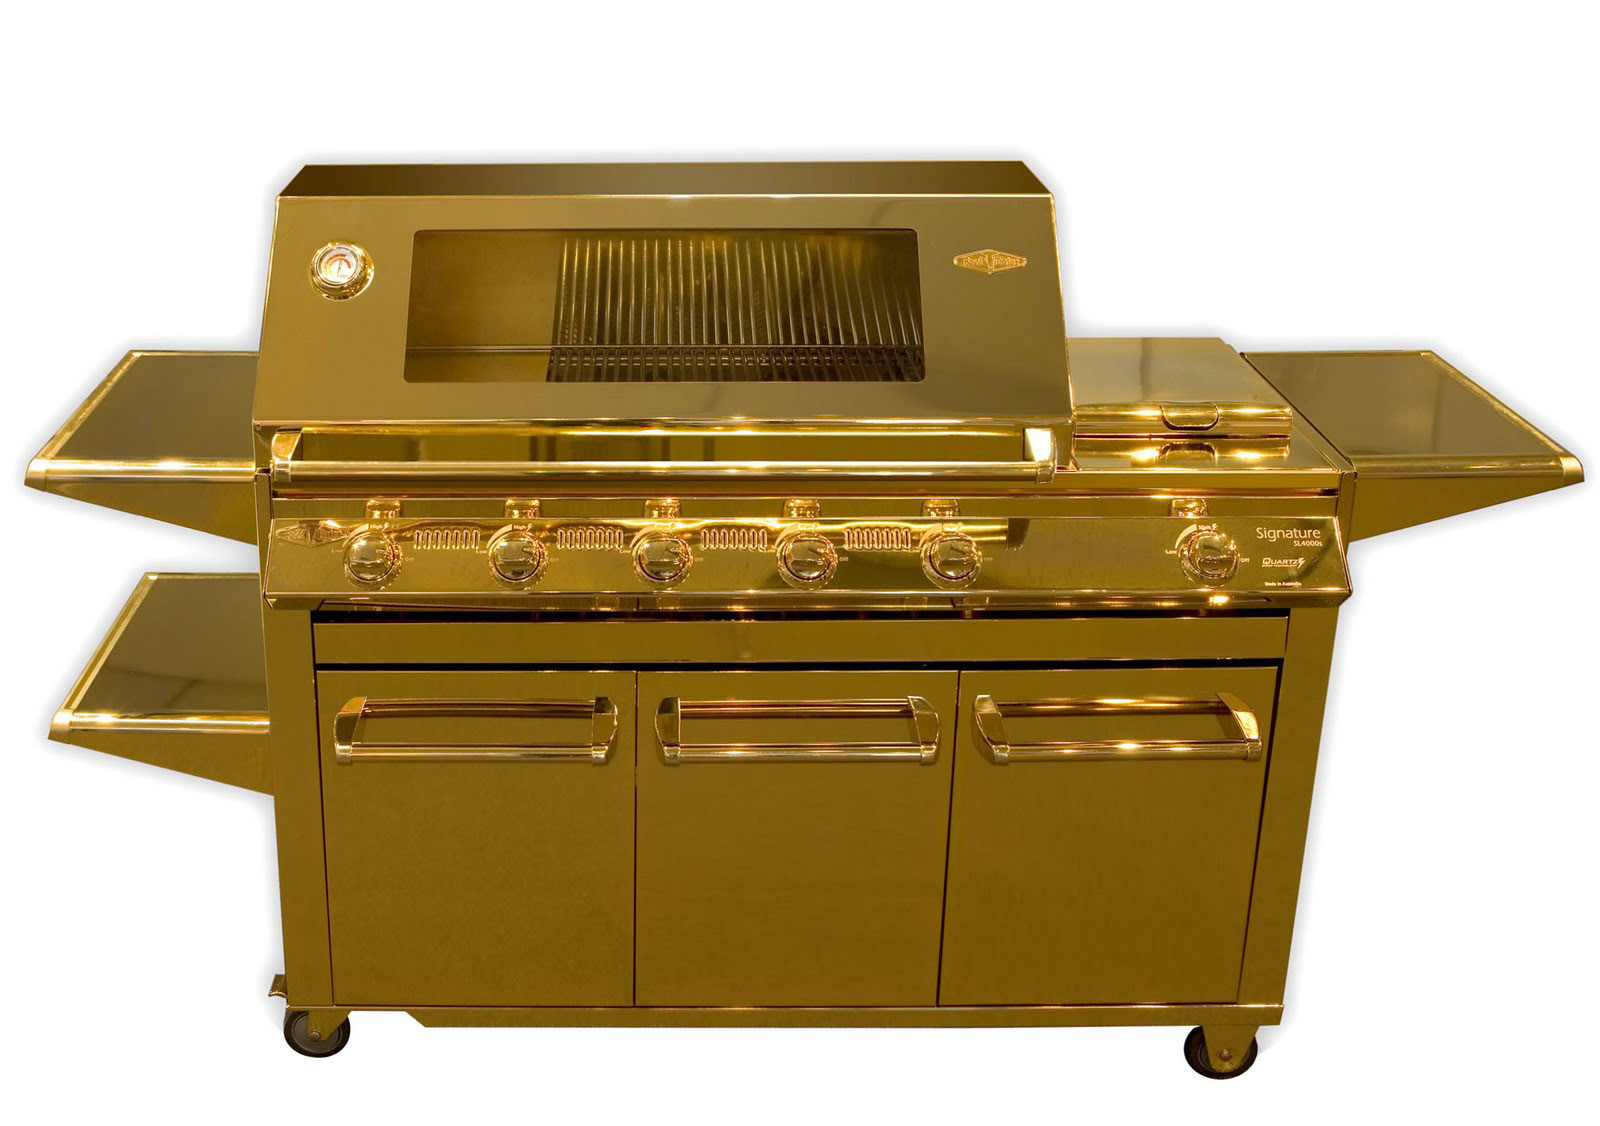 24-Carat Gold Barbecue Cooking in Luxury (2)